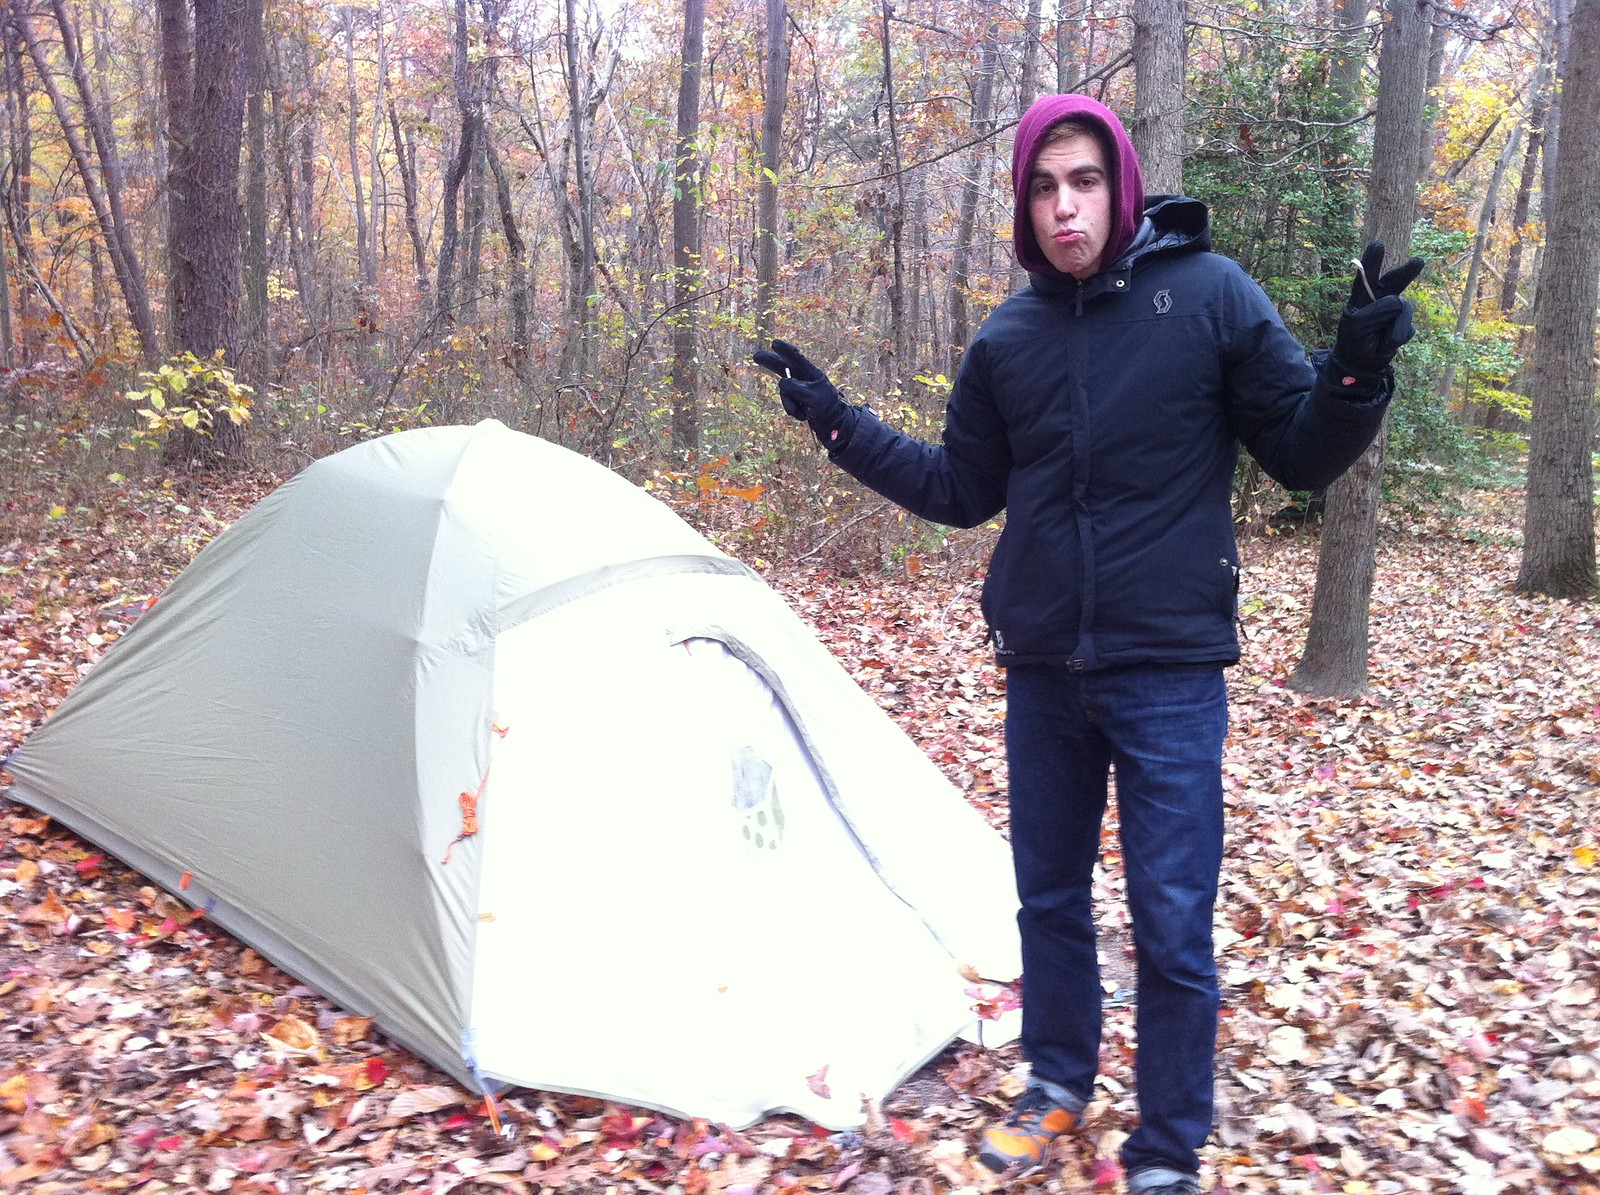 Nils and his manly tent